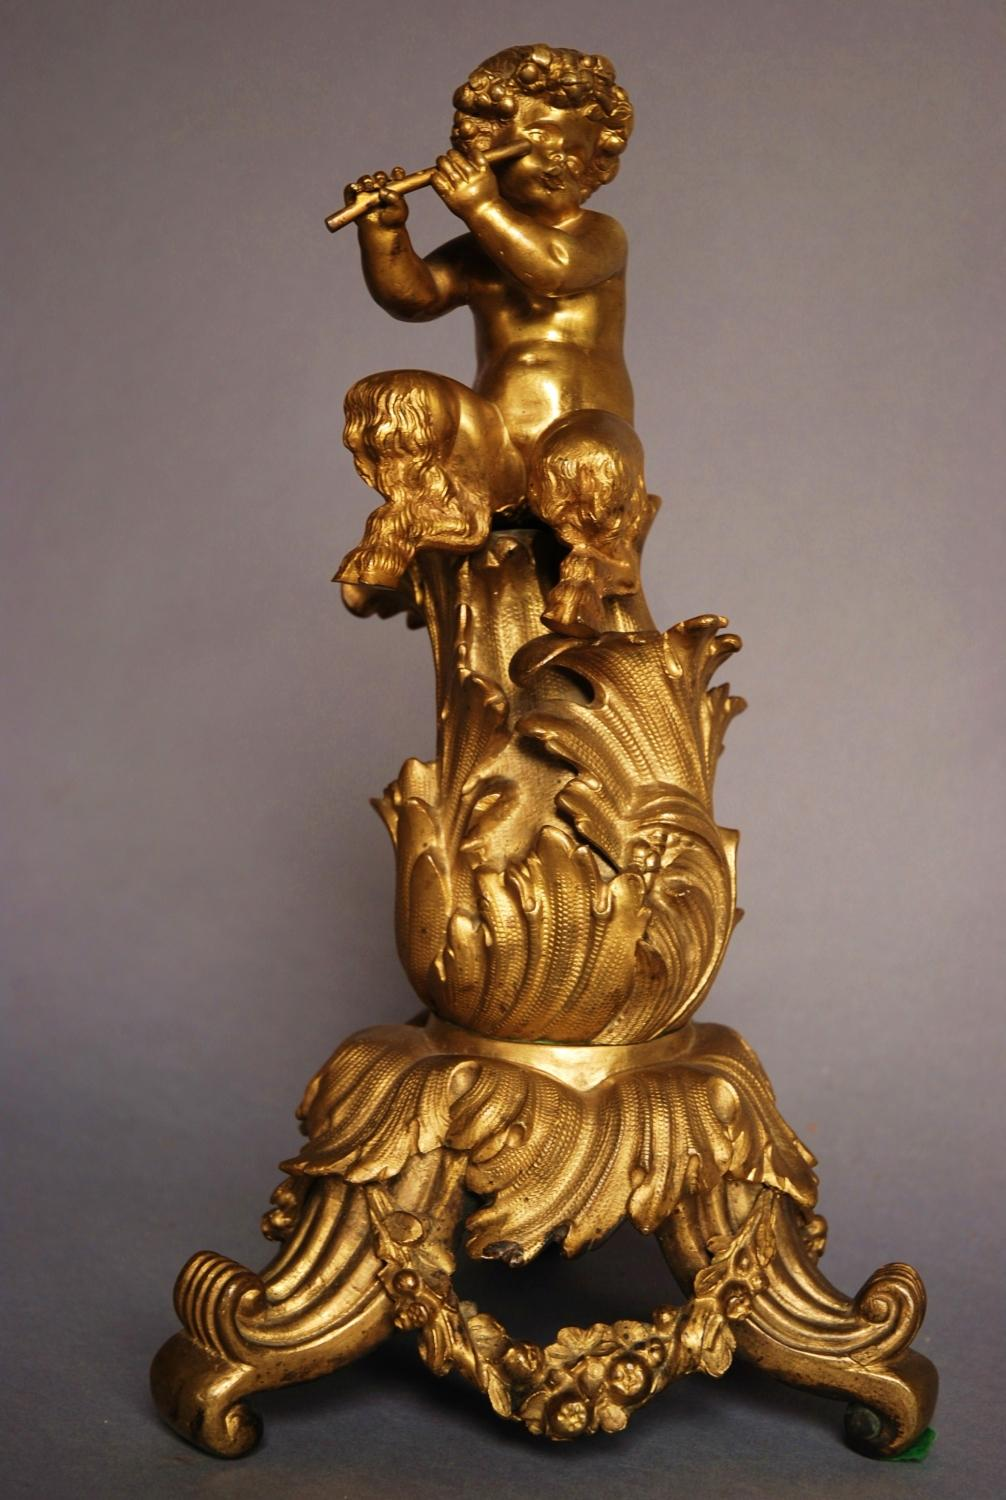 18thc ormolu figure of a cherub